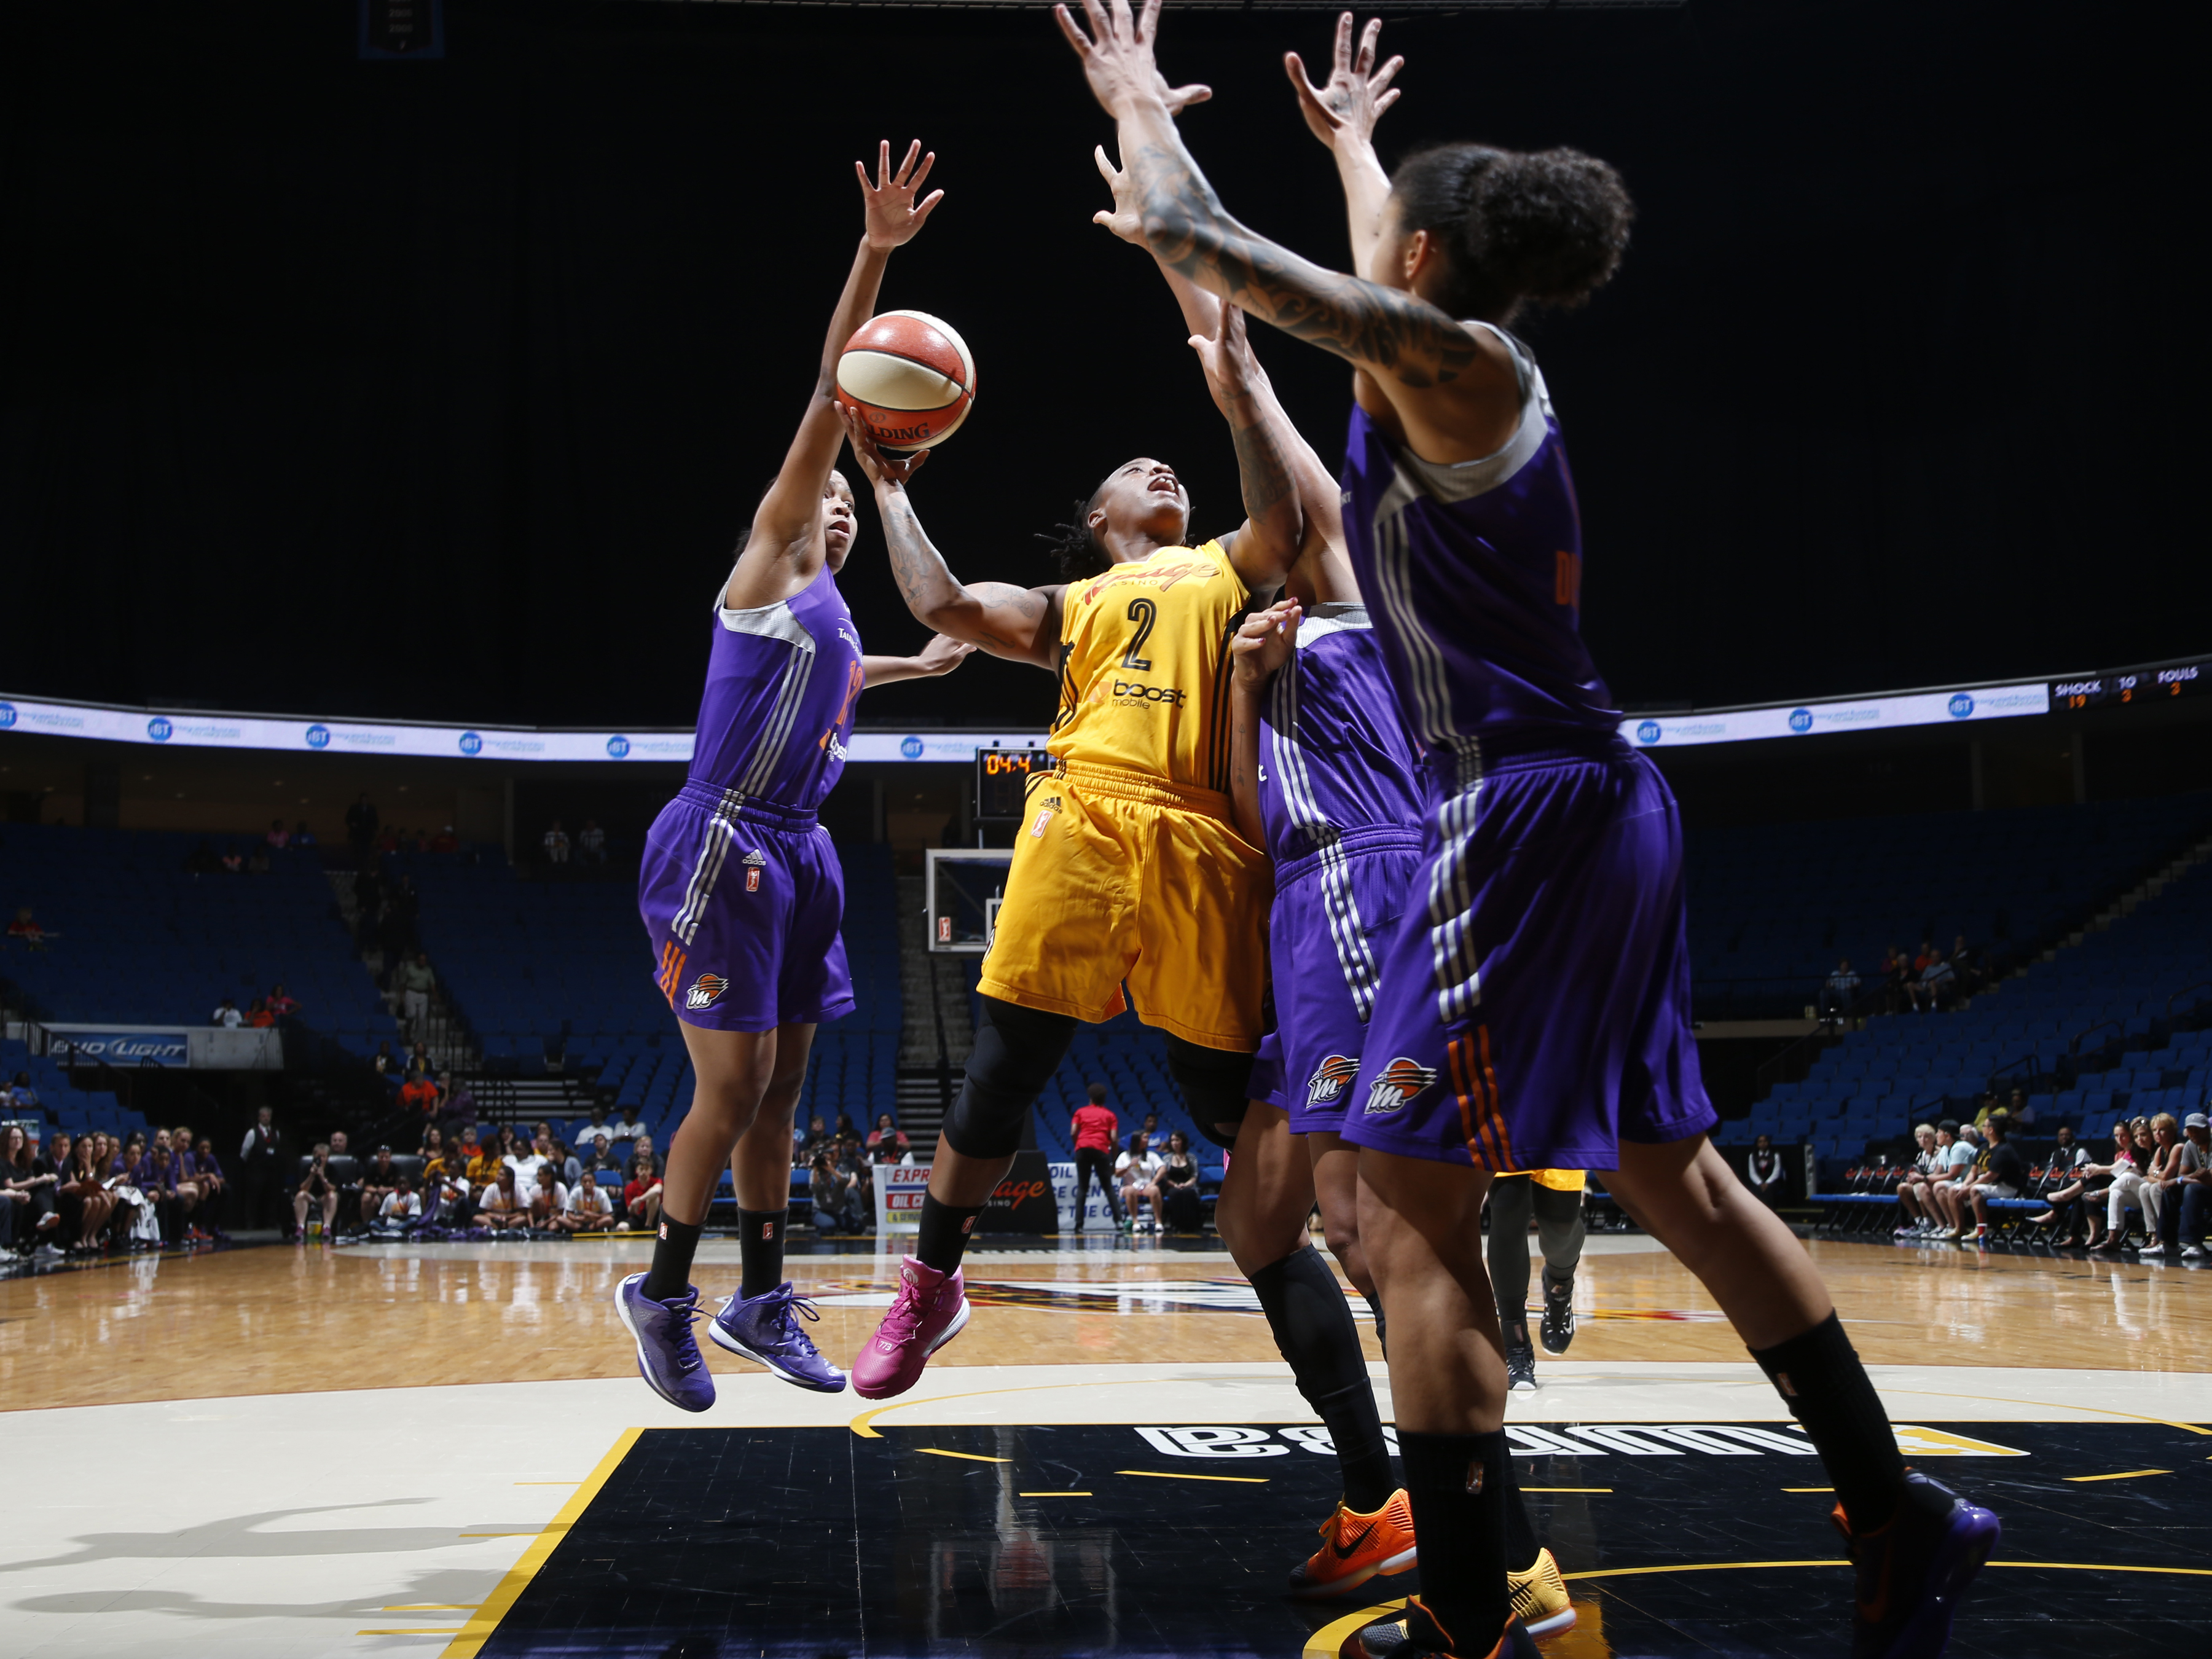 TULSA, OK - AUGUST 18: Riquna Williams #2 of the Tulsa Shock shoots the ball against the Phoenix Mercury on August 18, 2015 at the BOK Center in Tulsa, Oklahoma.  (Photo by Shane Bevel/NBAE via Getty Images)